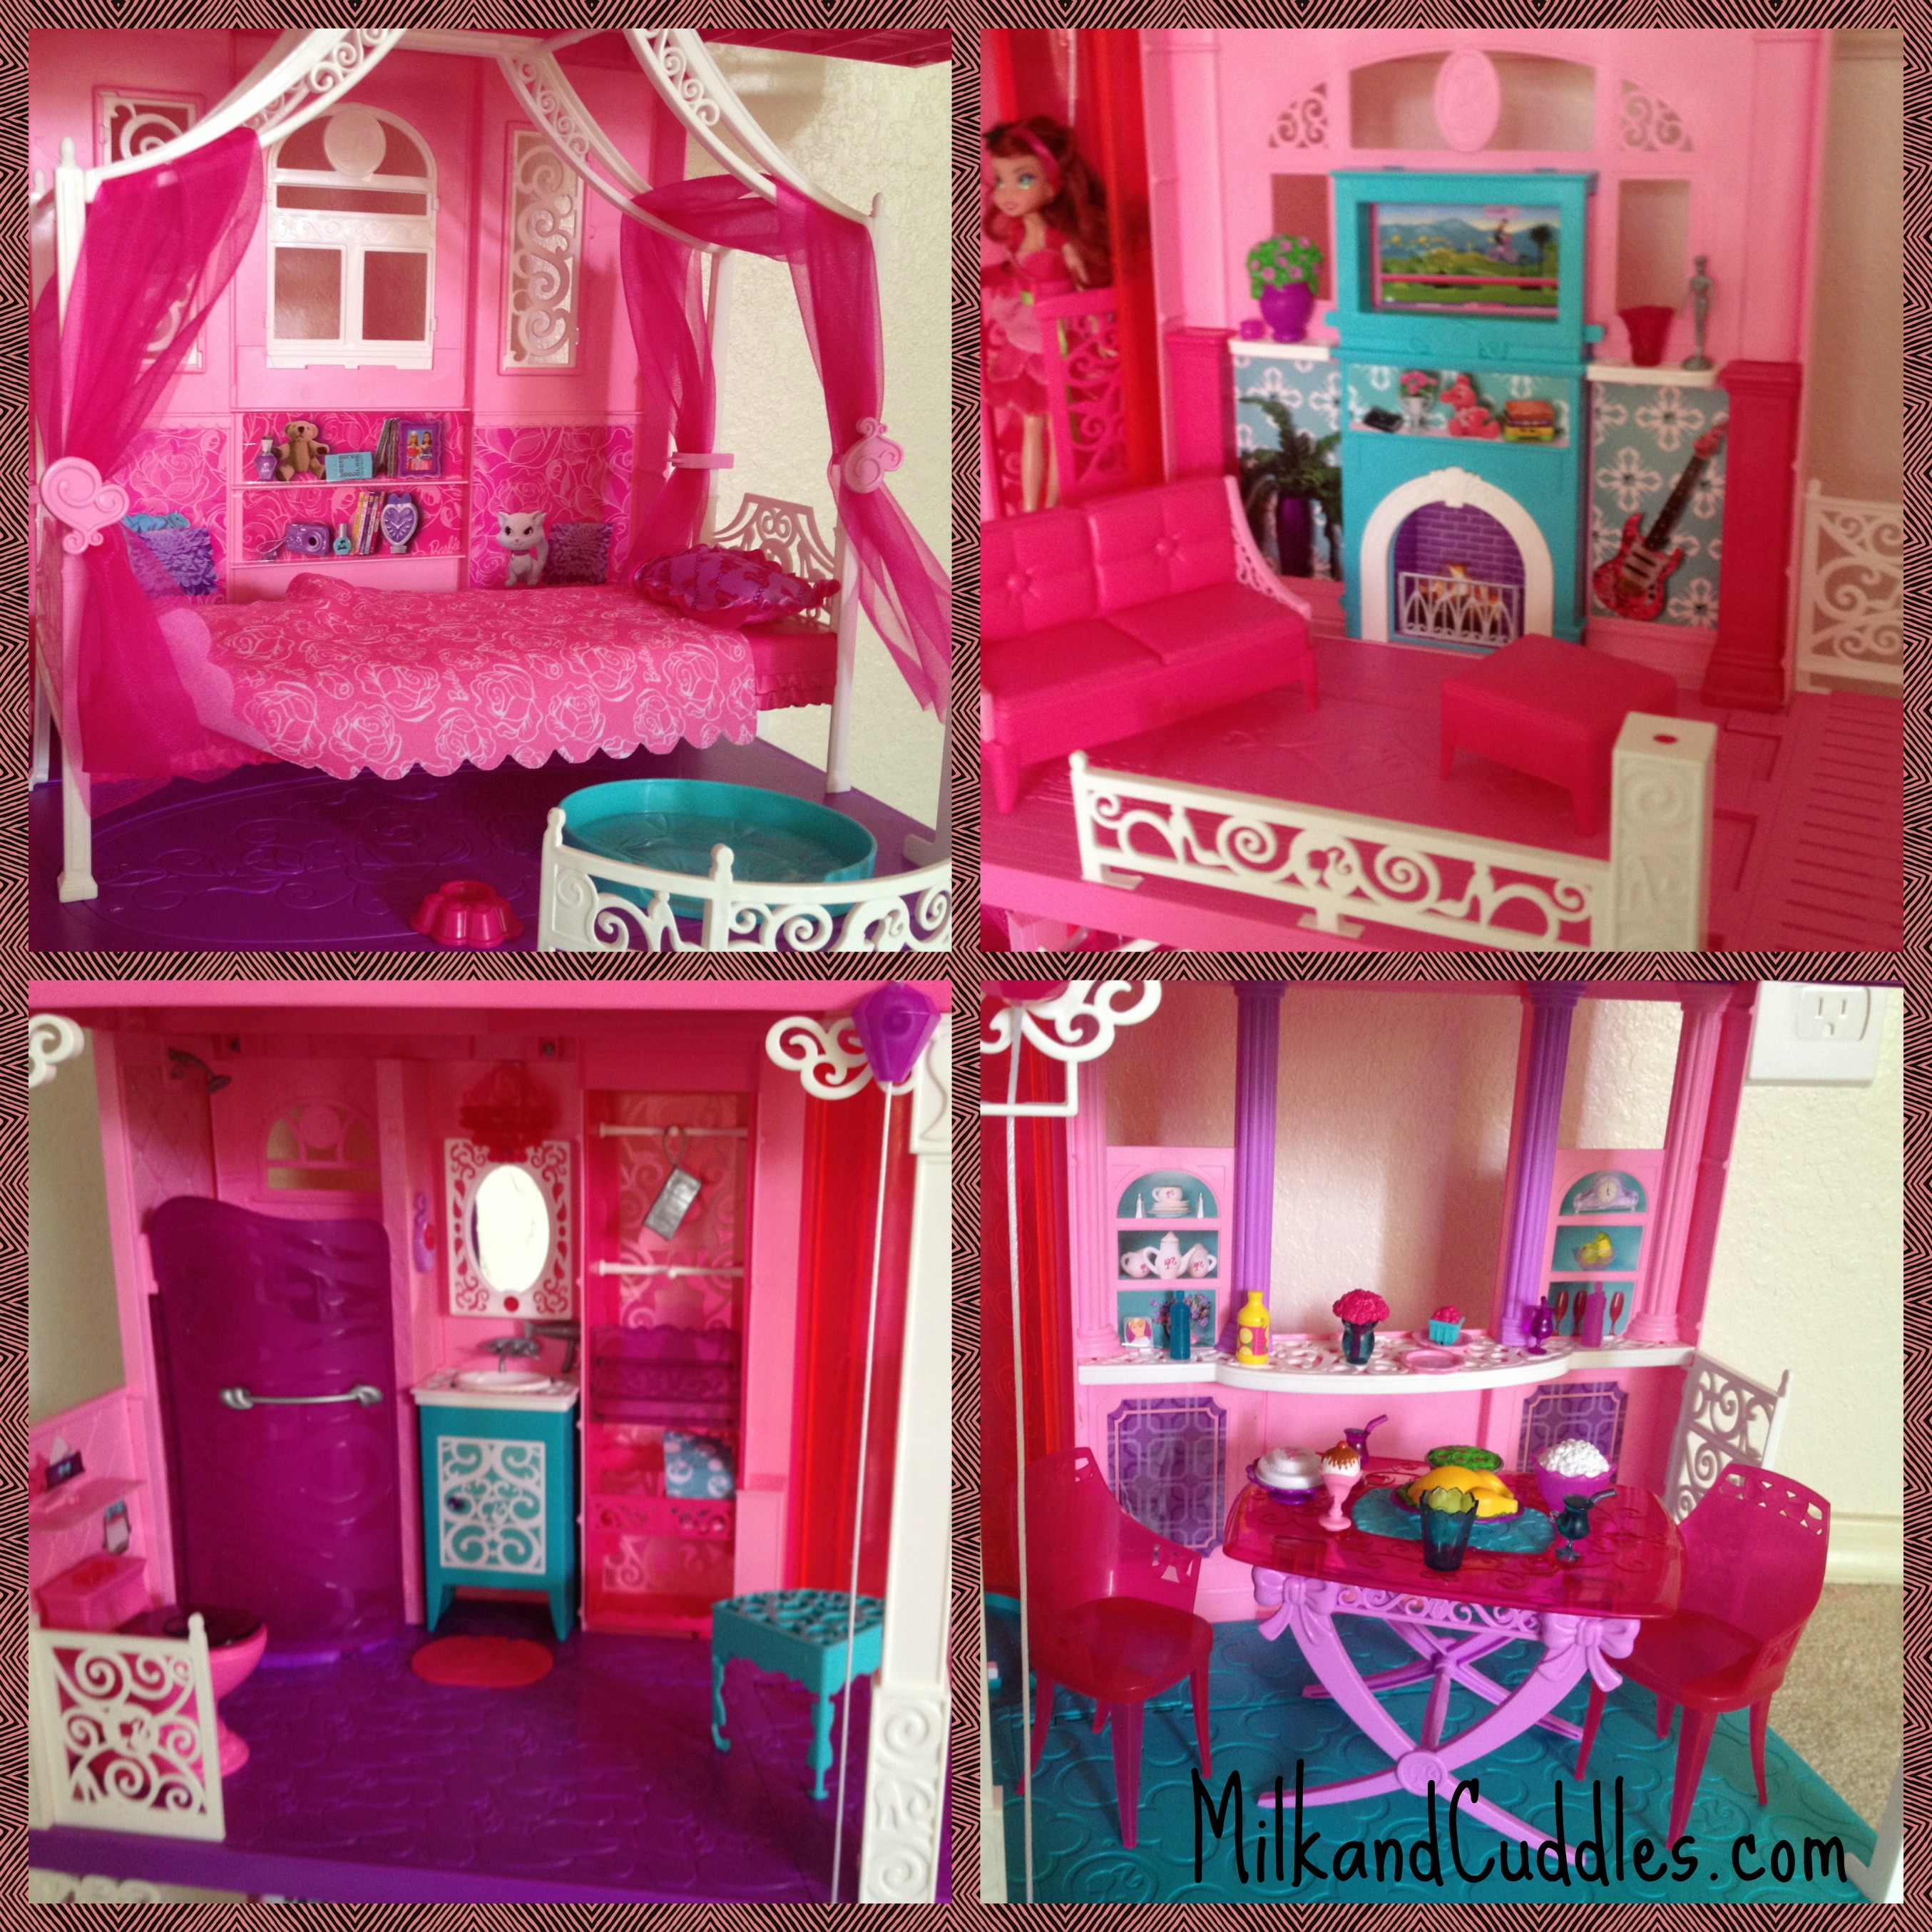 Dreams House Furniture: The Barbie Dreamhouse 2013